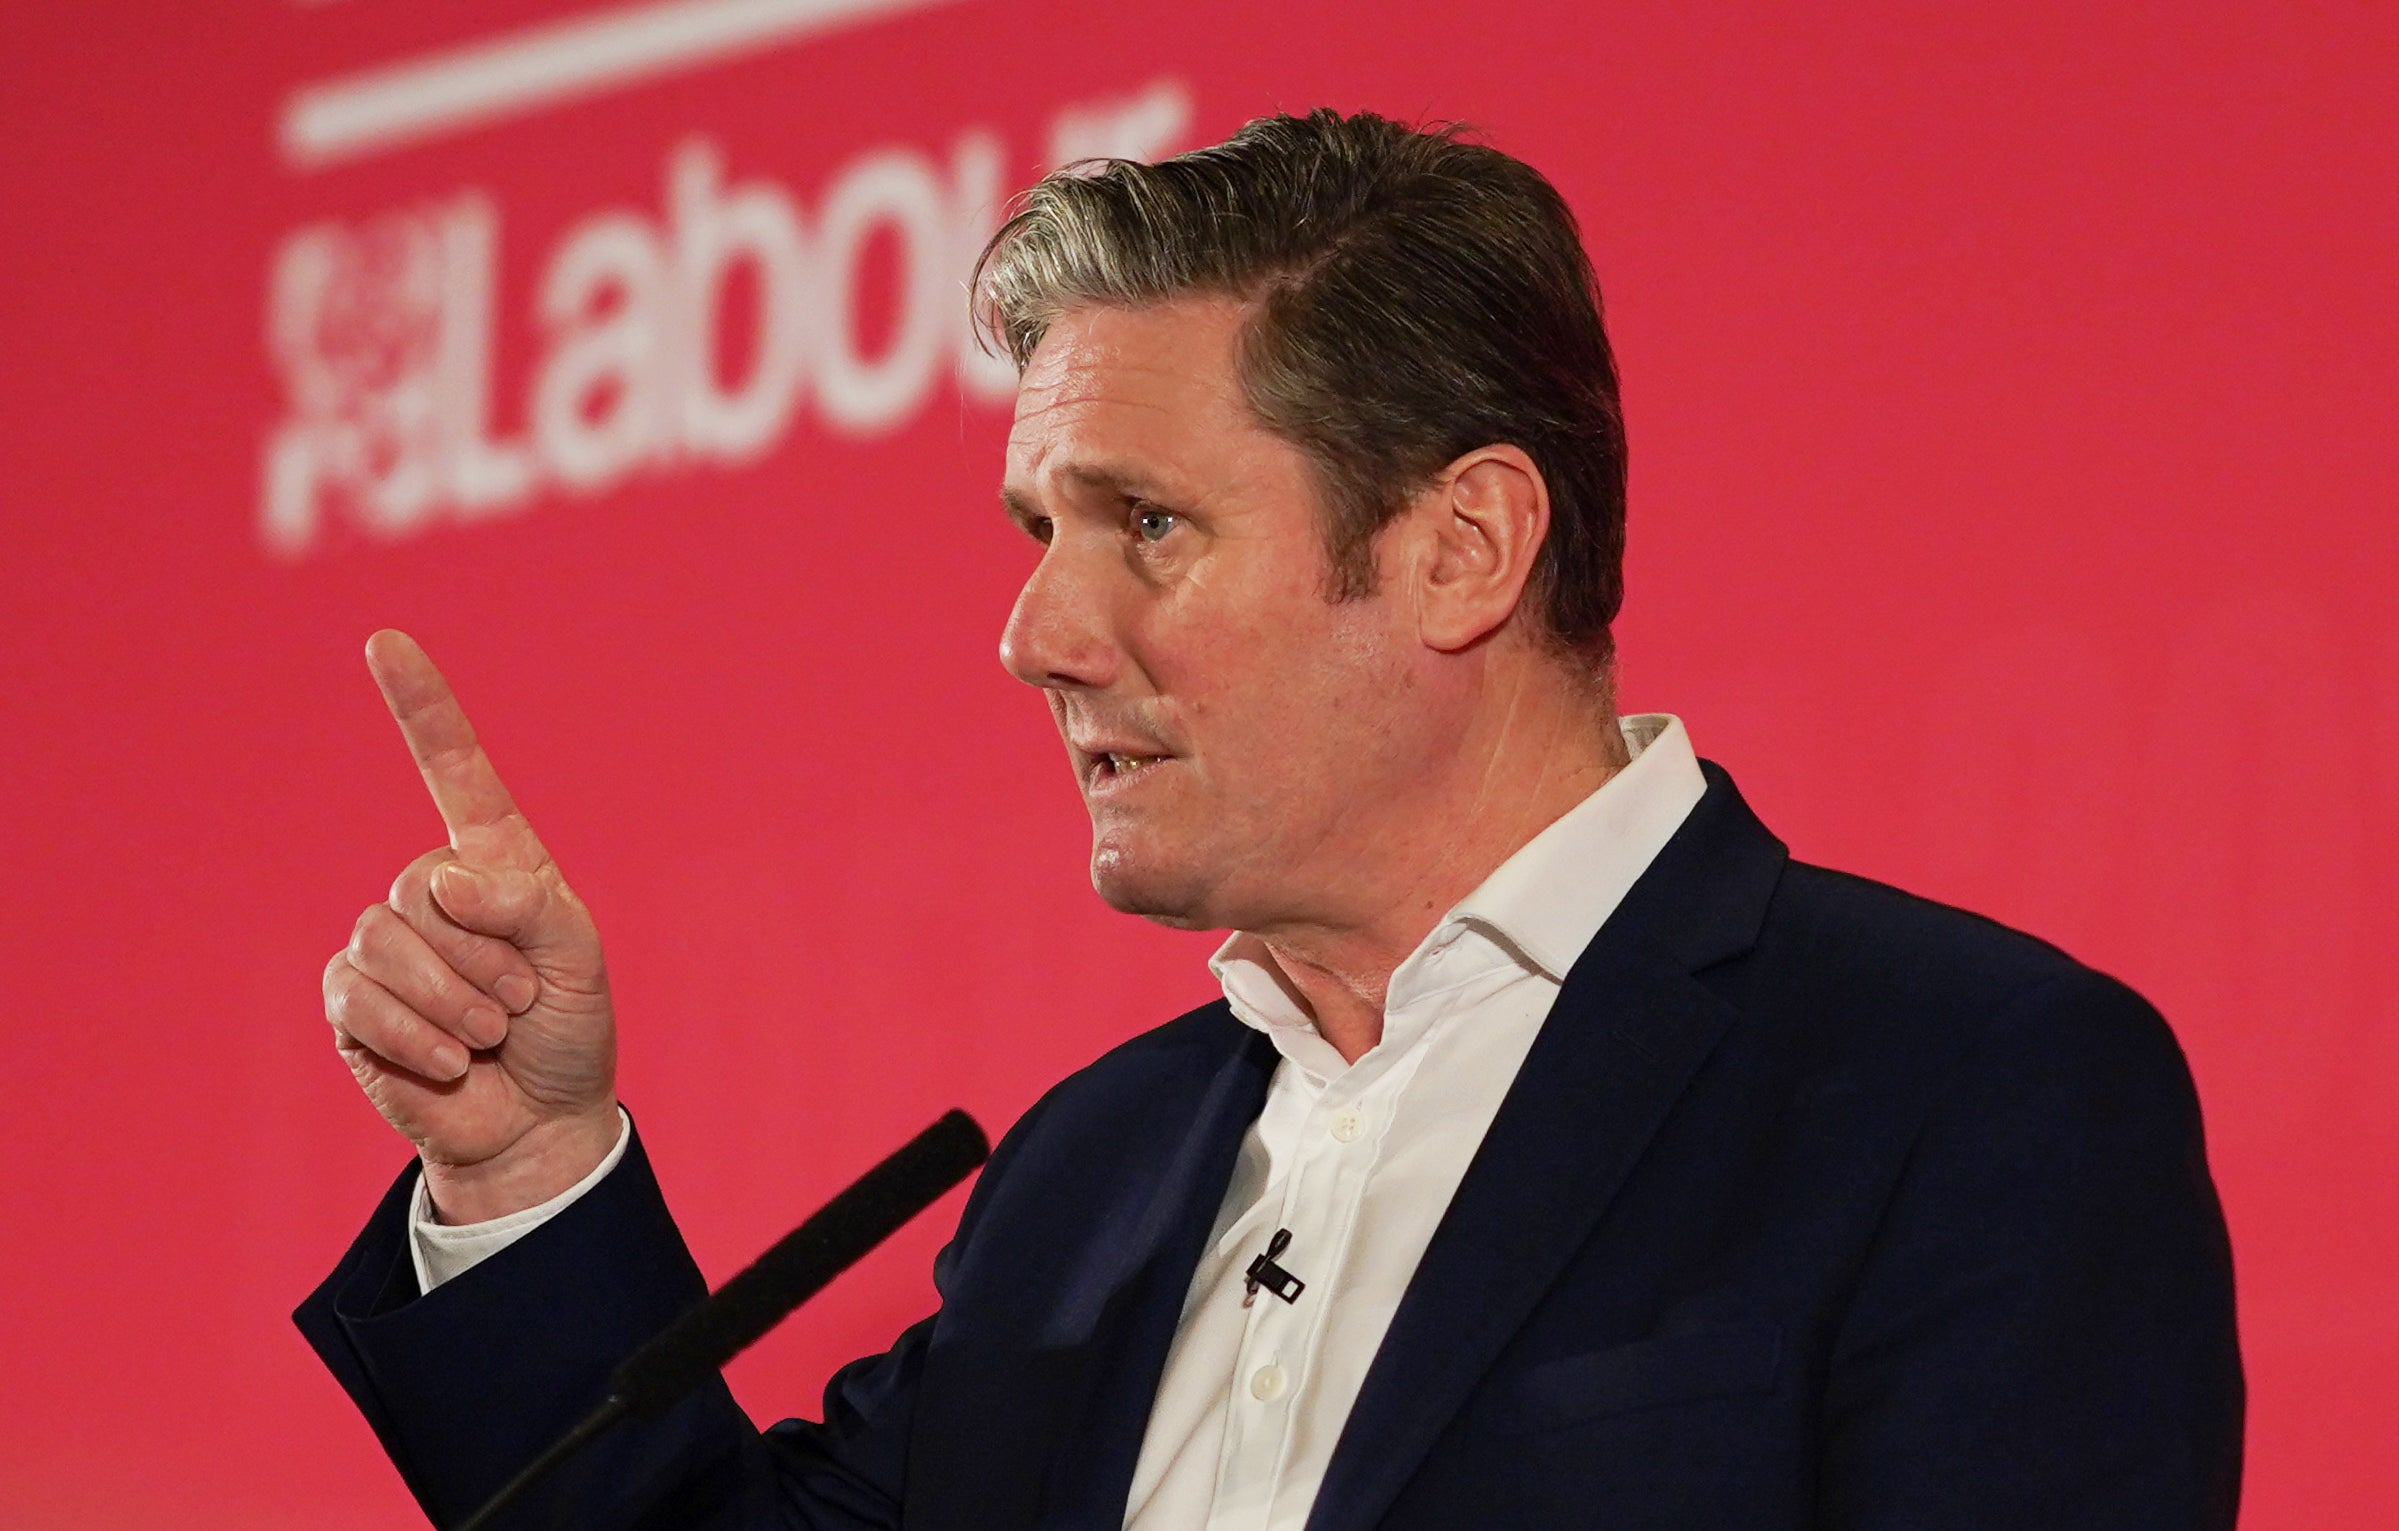 To succeed, Keir Starmer must remember the people who matter: ordinary voters